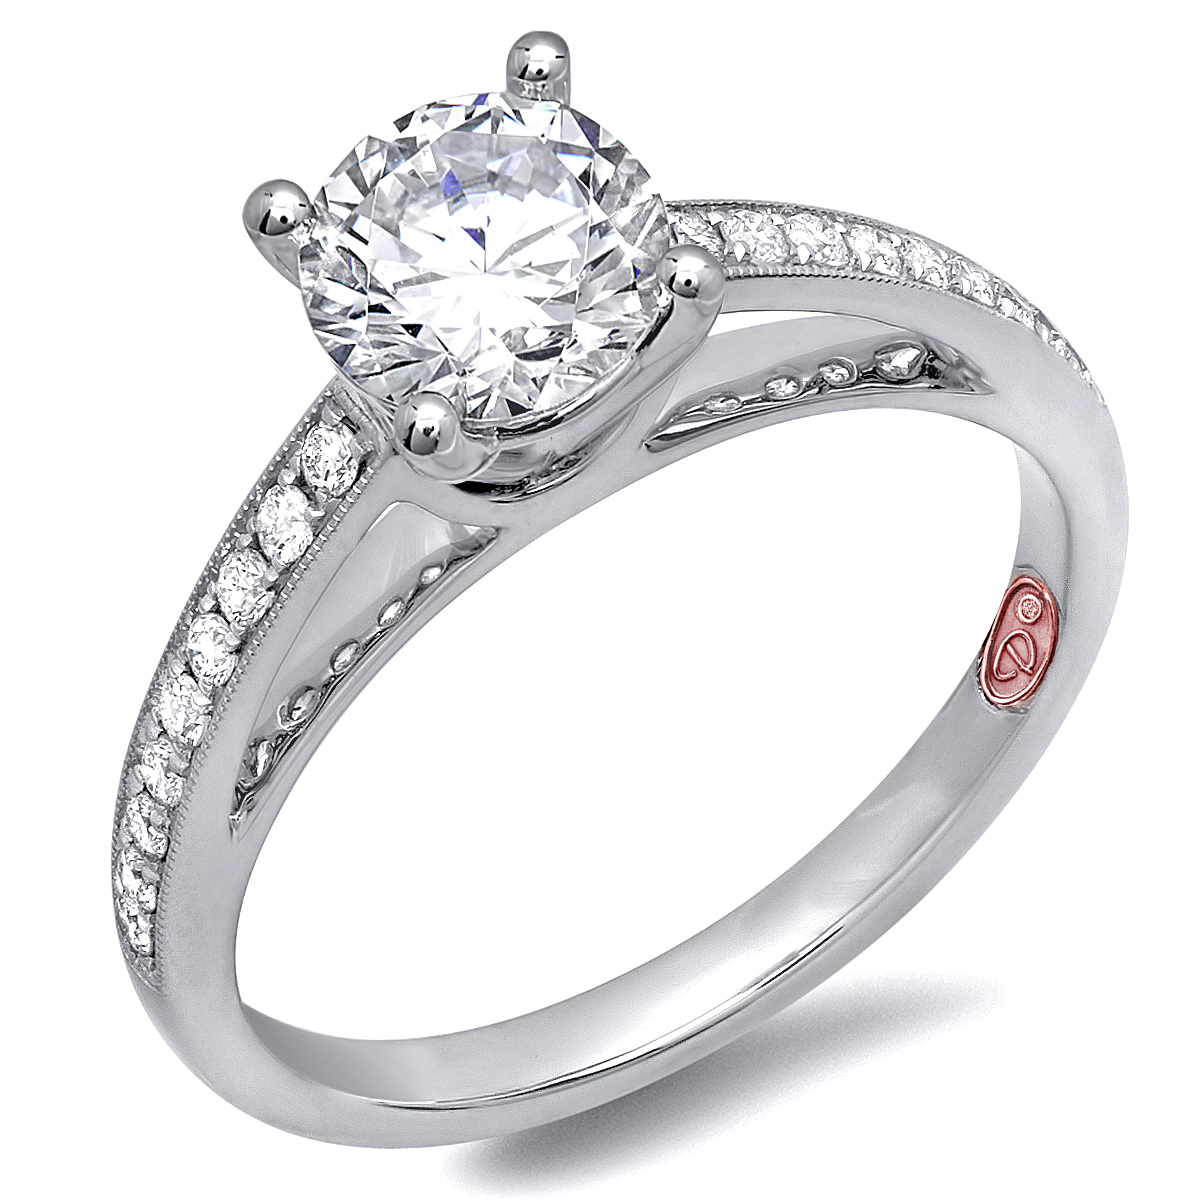 Princess demarco bridal jewelry official blog designer engagement rings in east providence junglespirit Images